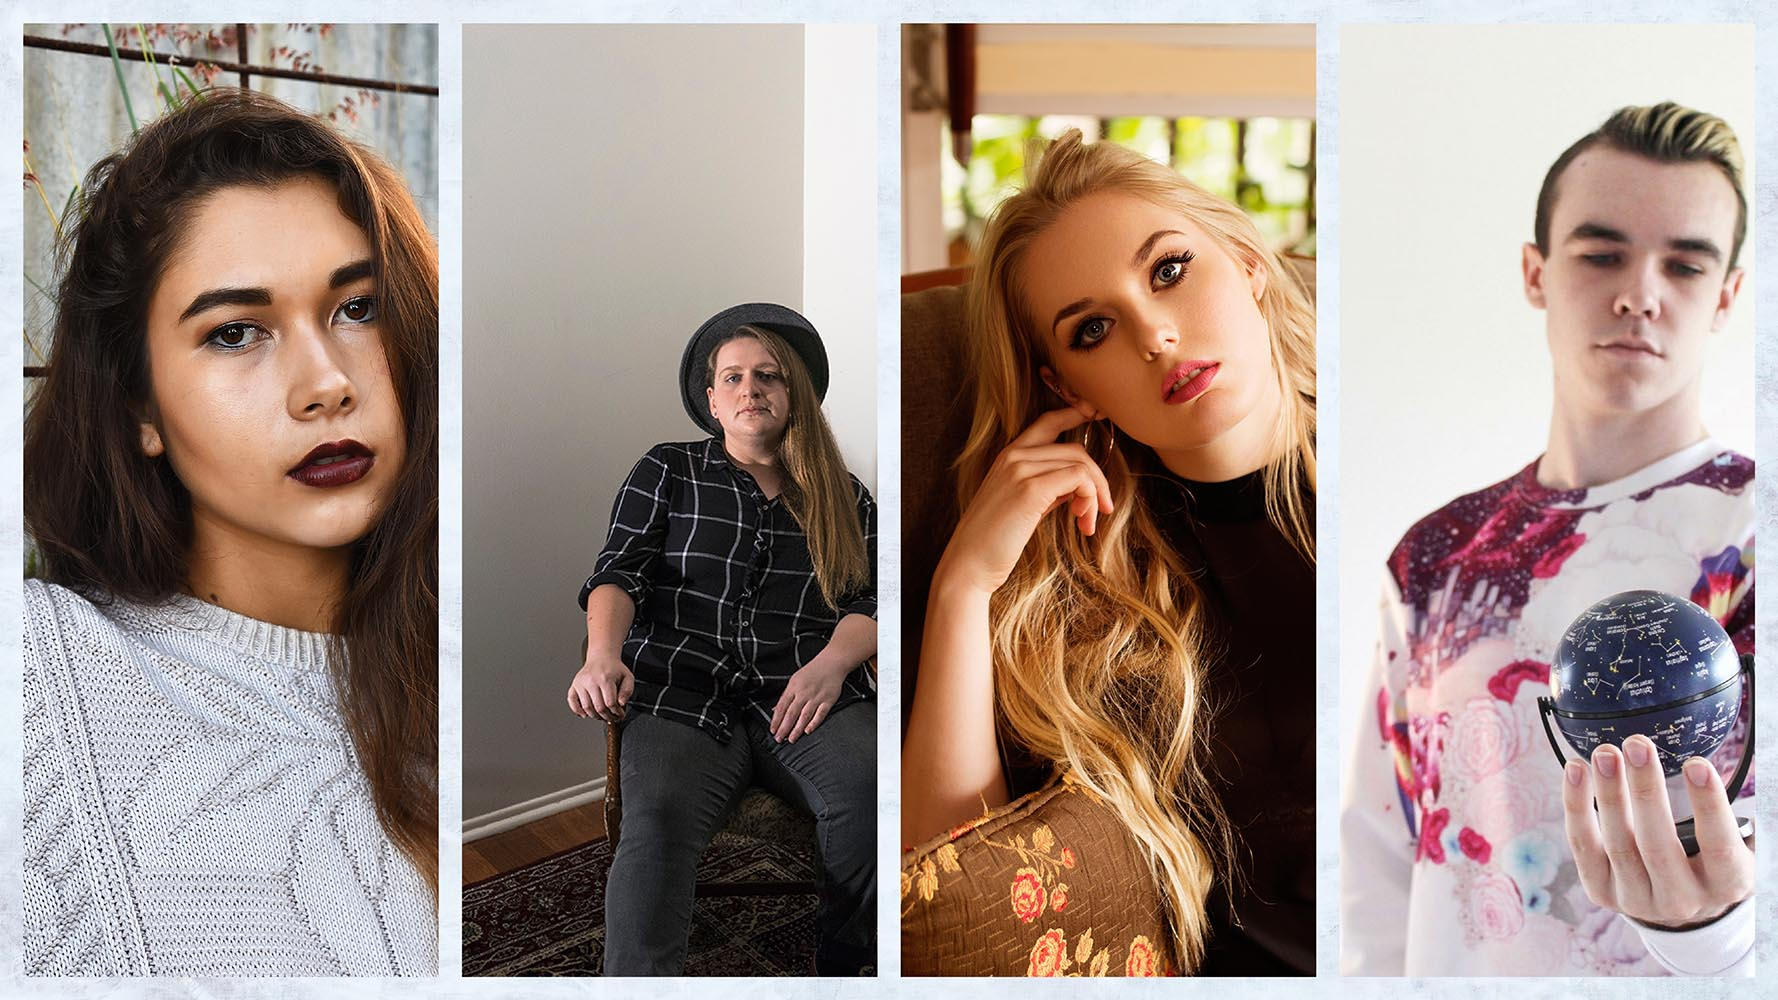 From left to right: Sophia Koop, Tiarni Hope, Amber Stone and Lucalion